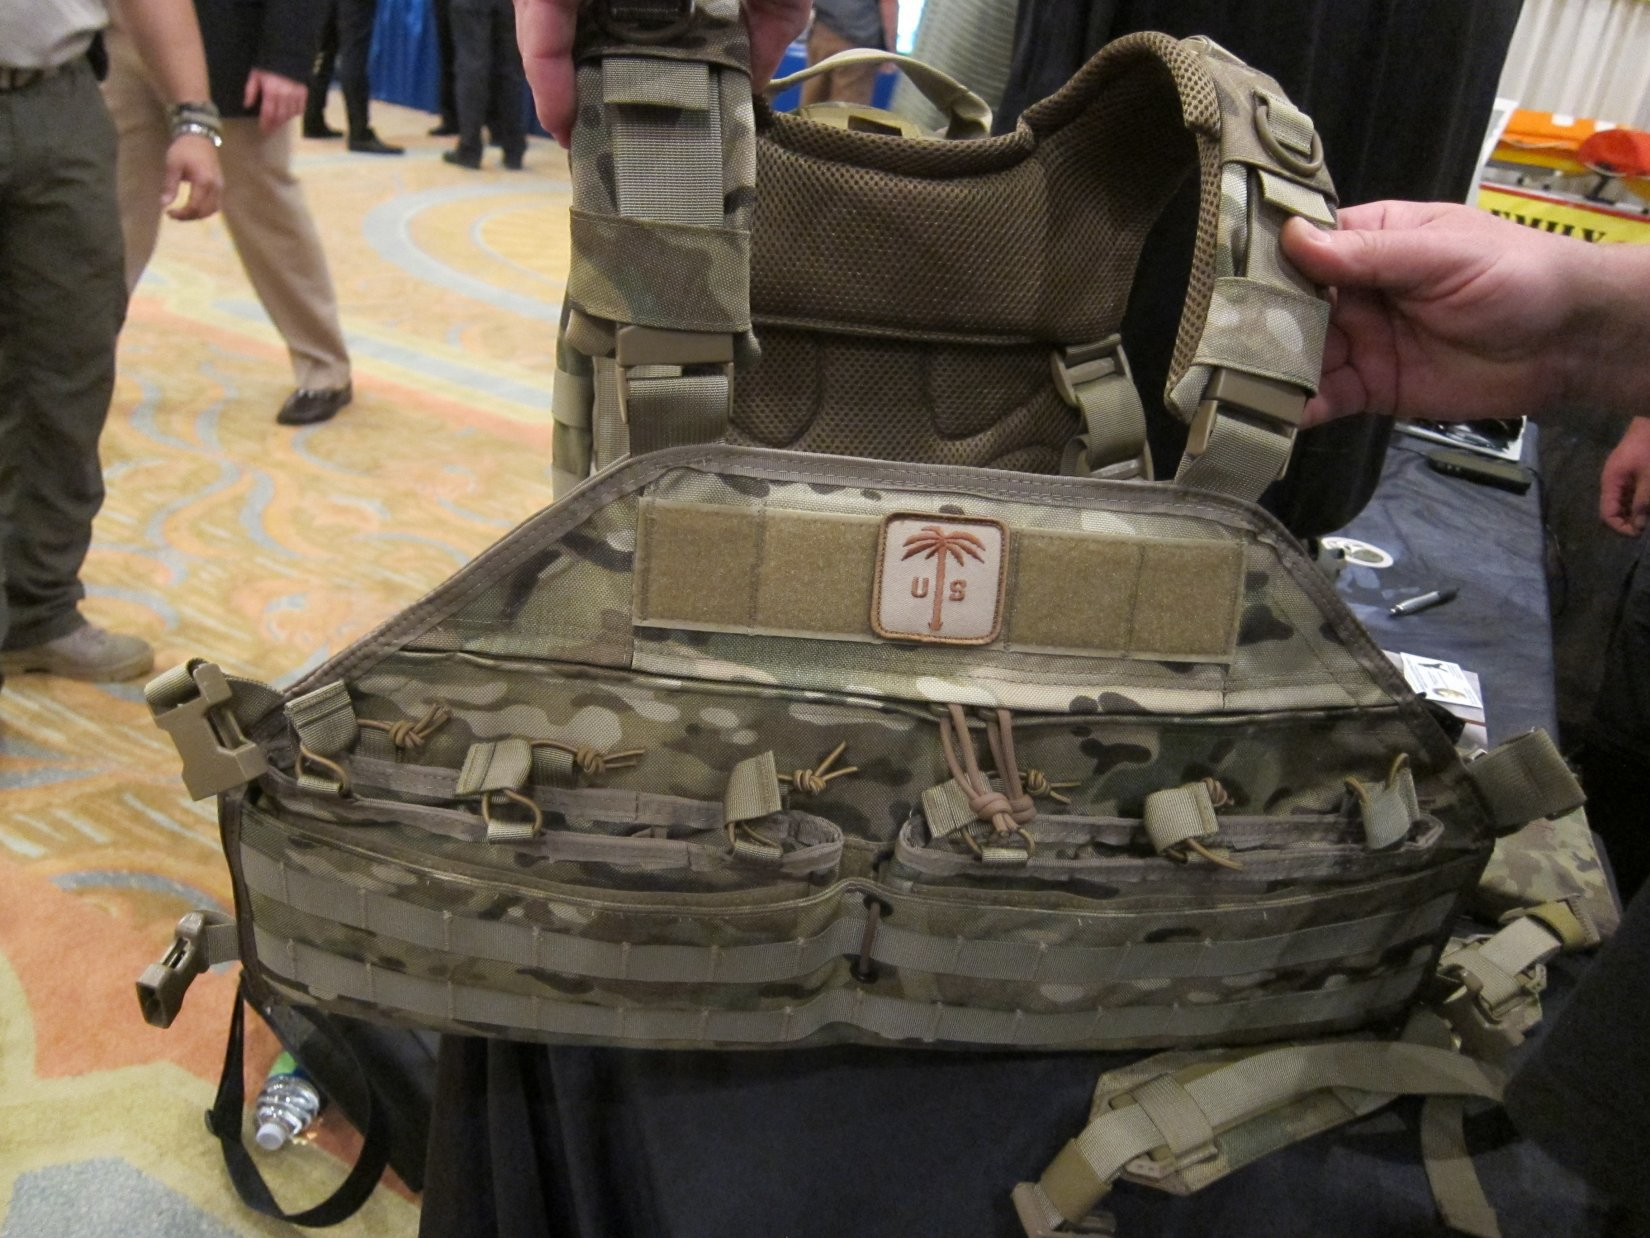 US Palm Draco Hardened Backpack HBP Tactical Pack Multi Platform Attack Rack MPAR Tactical Armor Plate Carrier Body Armor with Horse Collar System HALO Counterterrorism Summit 2012 DefenseReview.com DR 3 US Palm Draco Hardened Backpack (HBP Tactical Pack)/Multi Platform Attack Rack (MPAR) Tactical Armor Plate Carrier (Body Armor) System with Enhanced Harness System (EHS) Collar: Meet the Agile Combat System (ACS) (Video!)